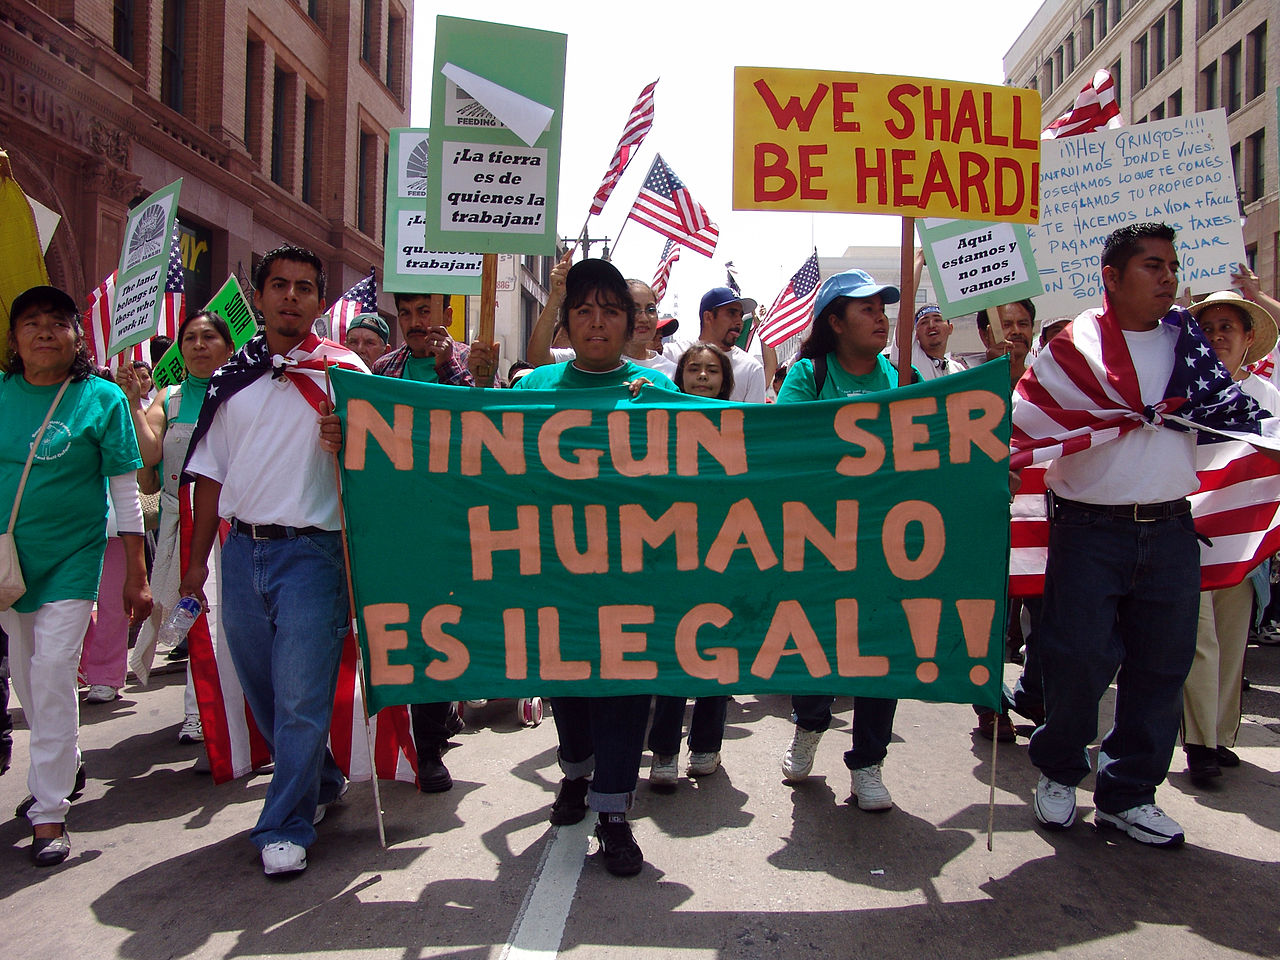 Protesters at May Day immigration march